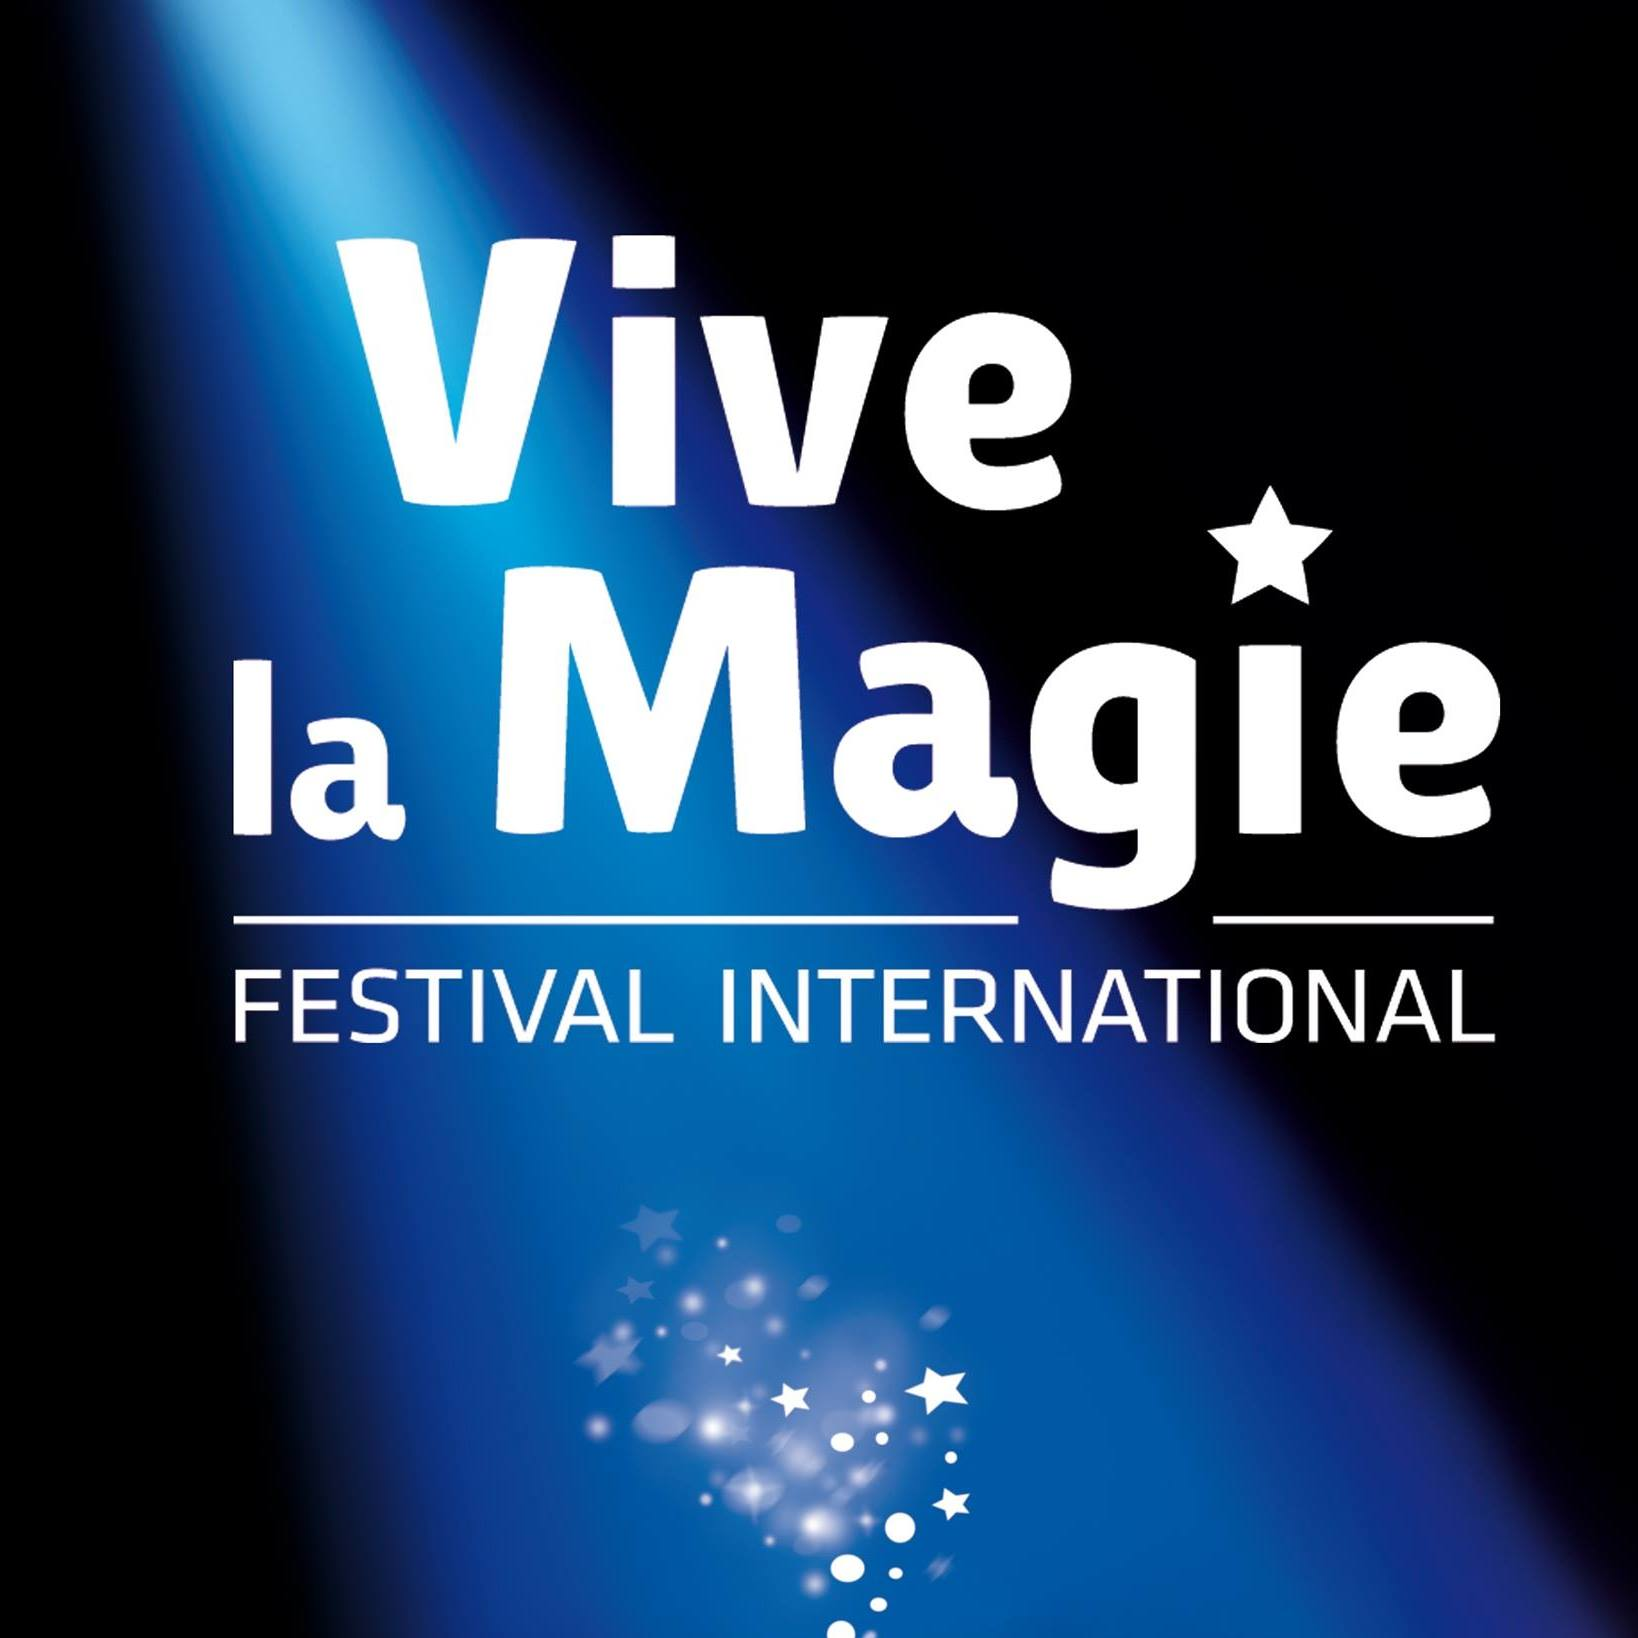 Festival International Vive La Magie at Theatre Sebastopol Tickets